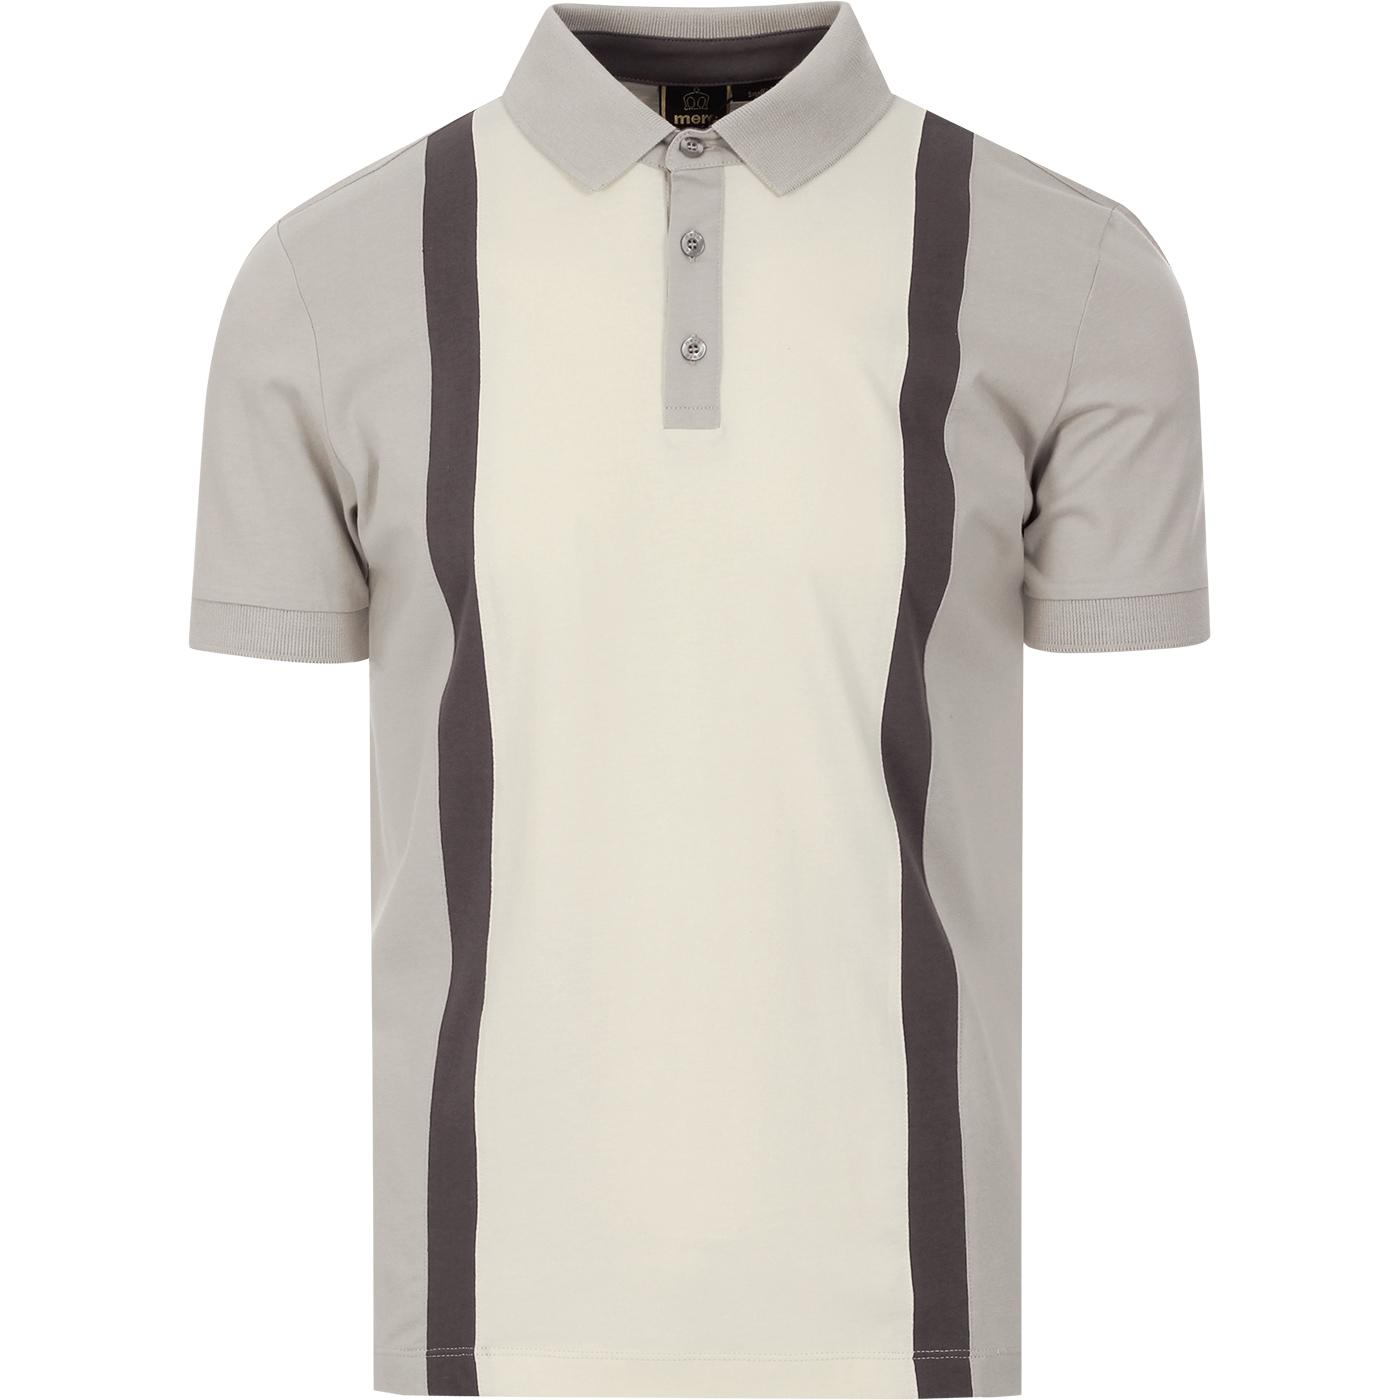 Atlas MERC Mod Stripe Block Panel Polo Top (LG)